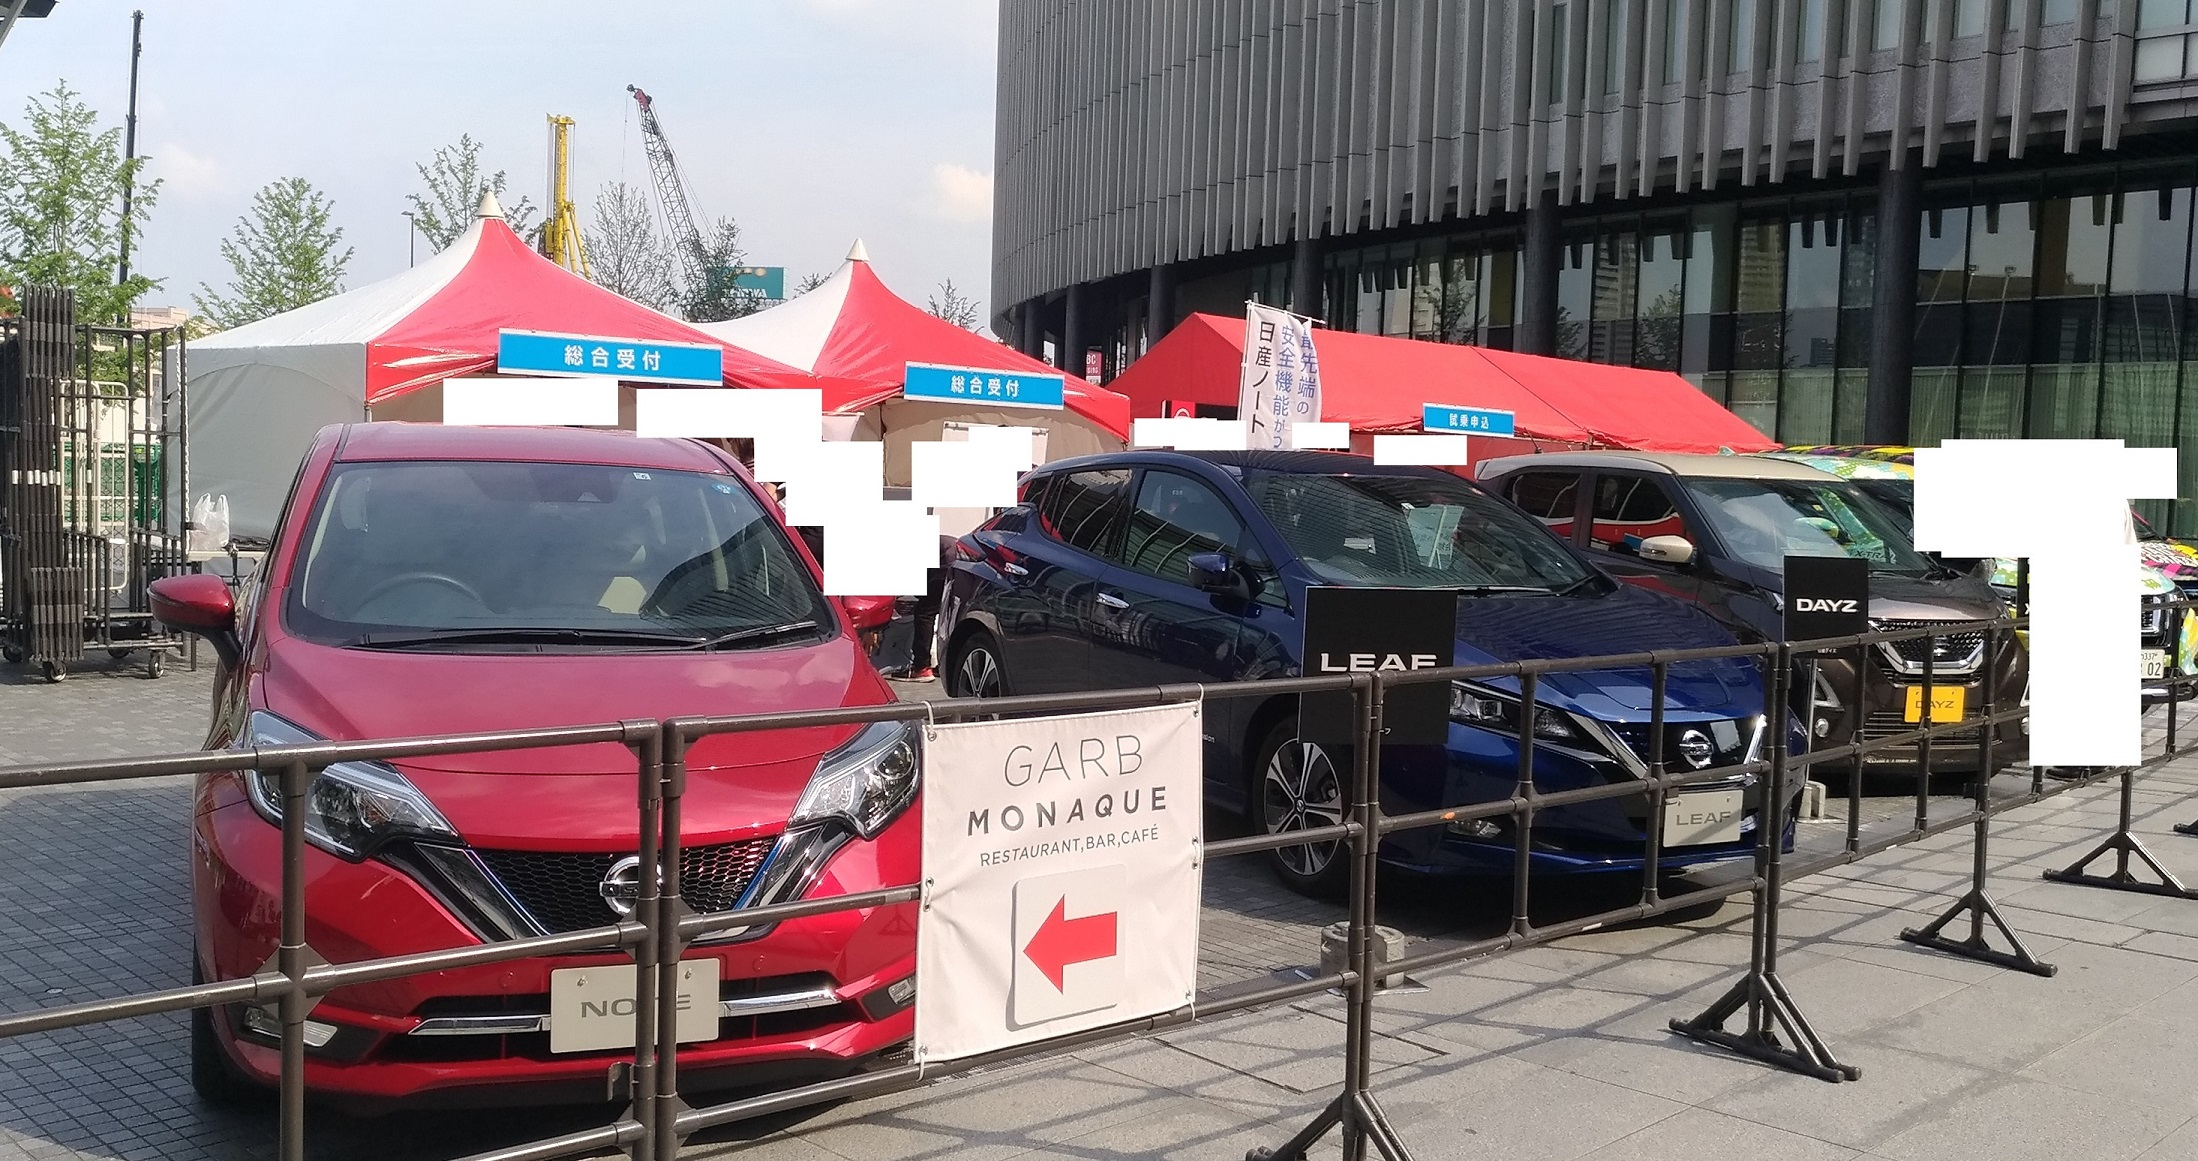 nissan_osaka_events_leaf_2.jpg